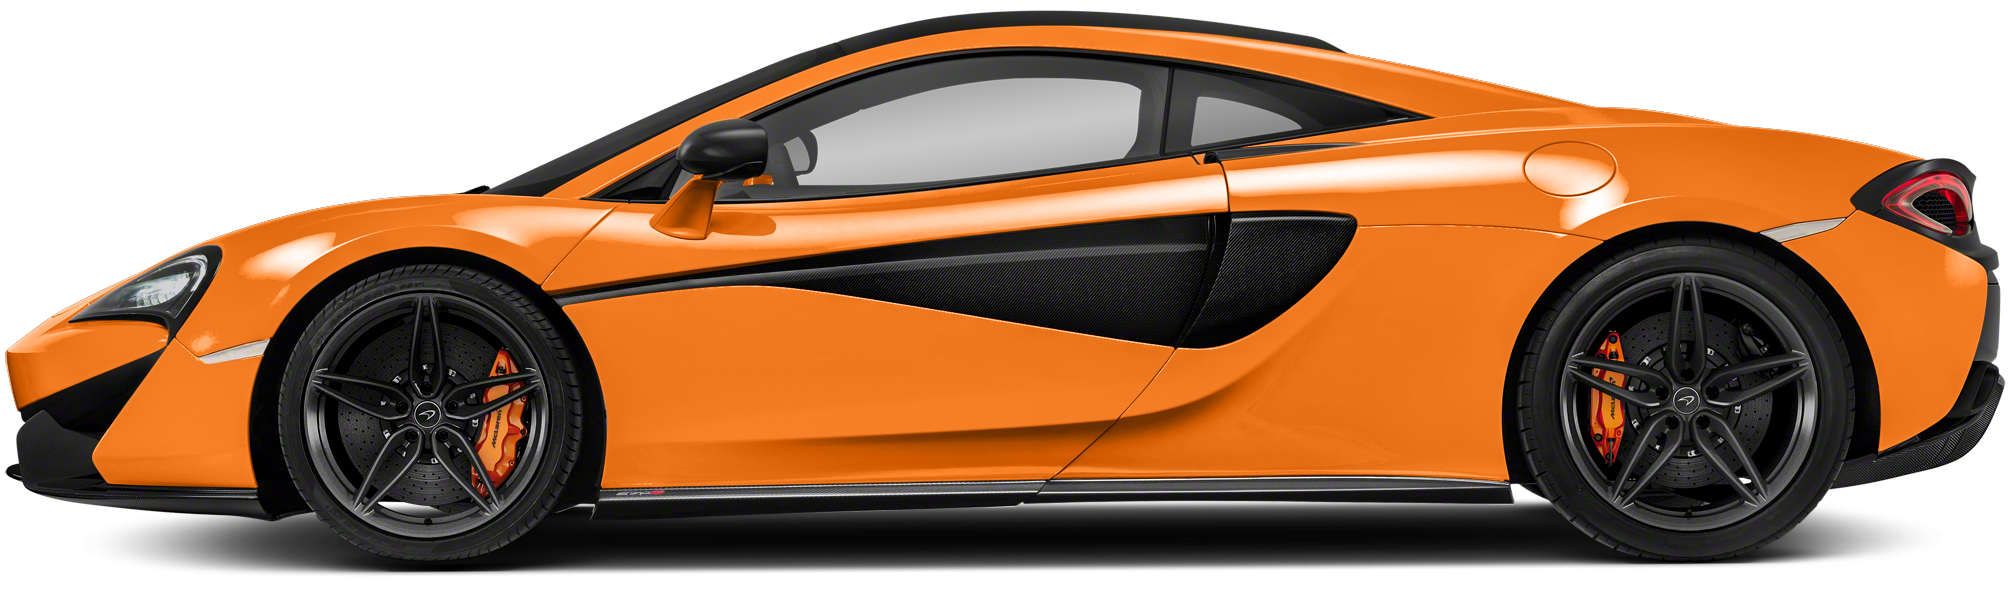 2020 McLaren 570S Coupe Redesign and Review